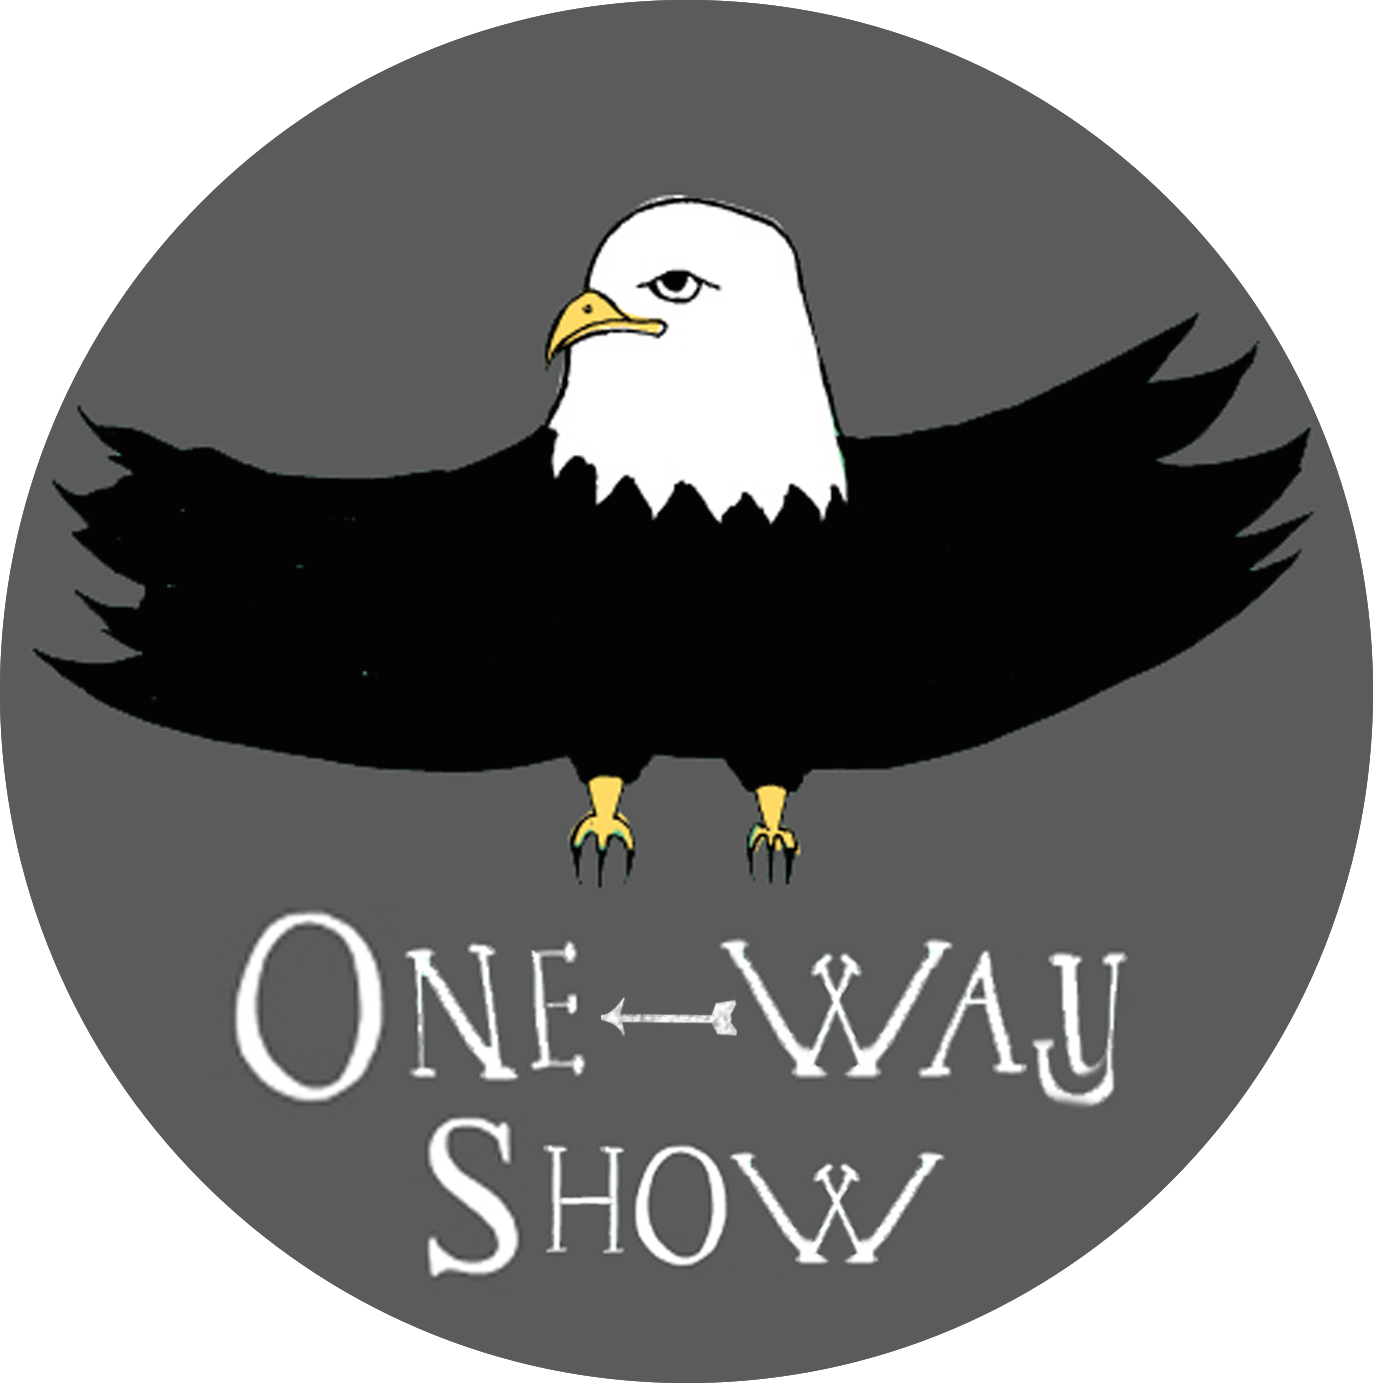 One Way show